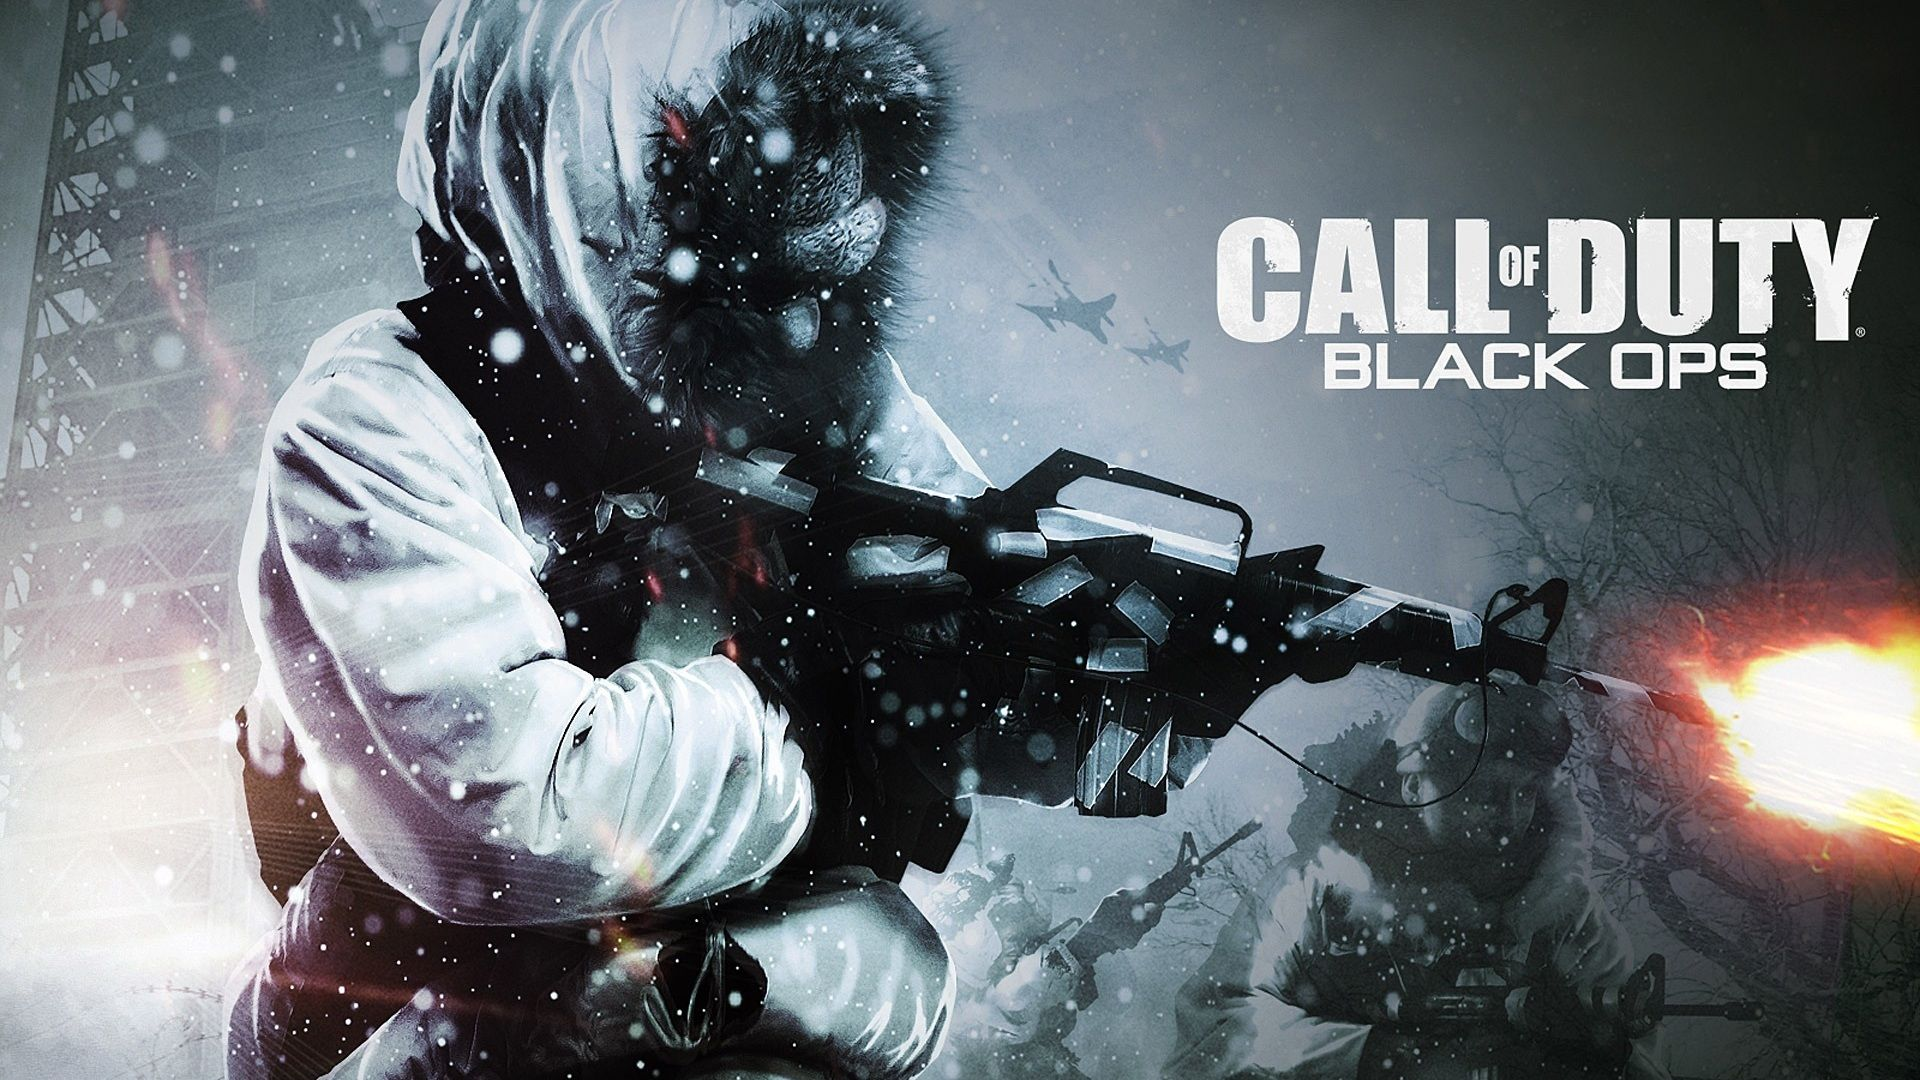 Widescreen Wallpapers Call Of Duty Wallpaper 1920x1080 Call Of